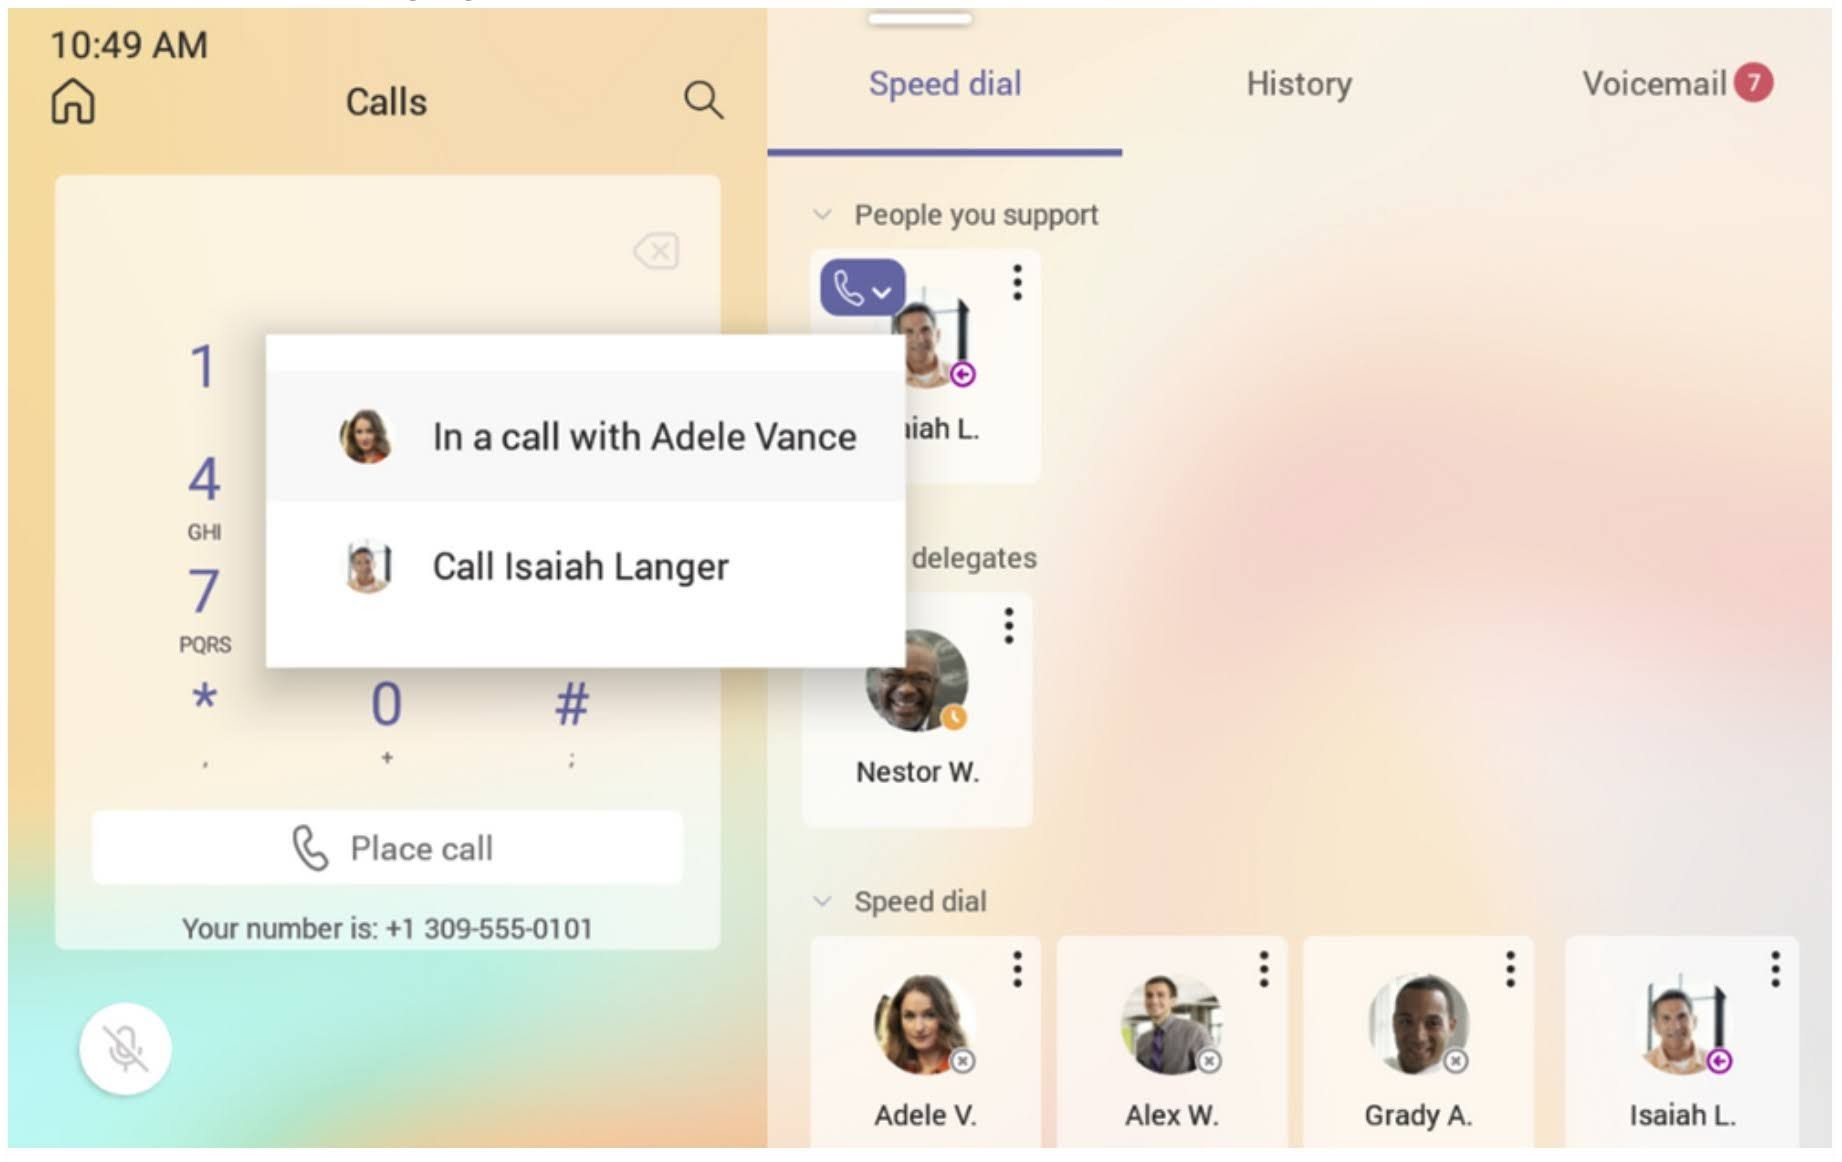 Microsoft Teams Displays Update on June 2021: Improved usability for advanced calling features